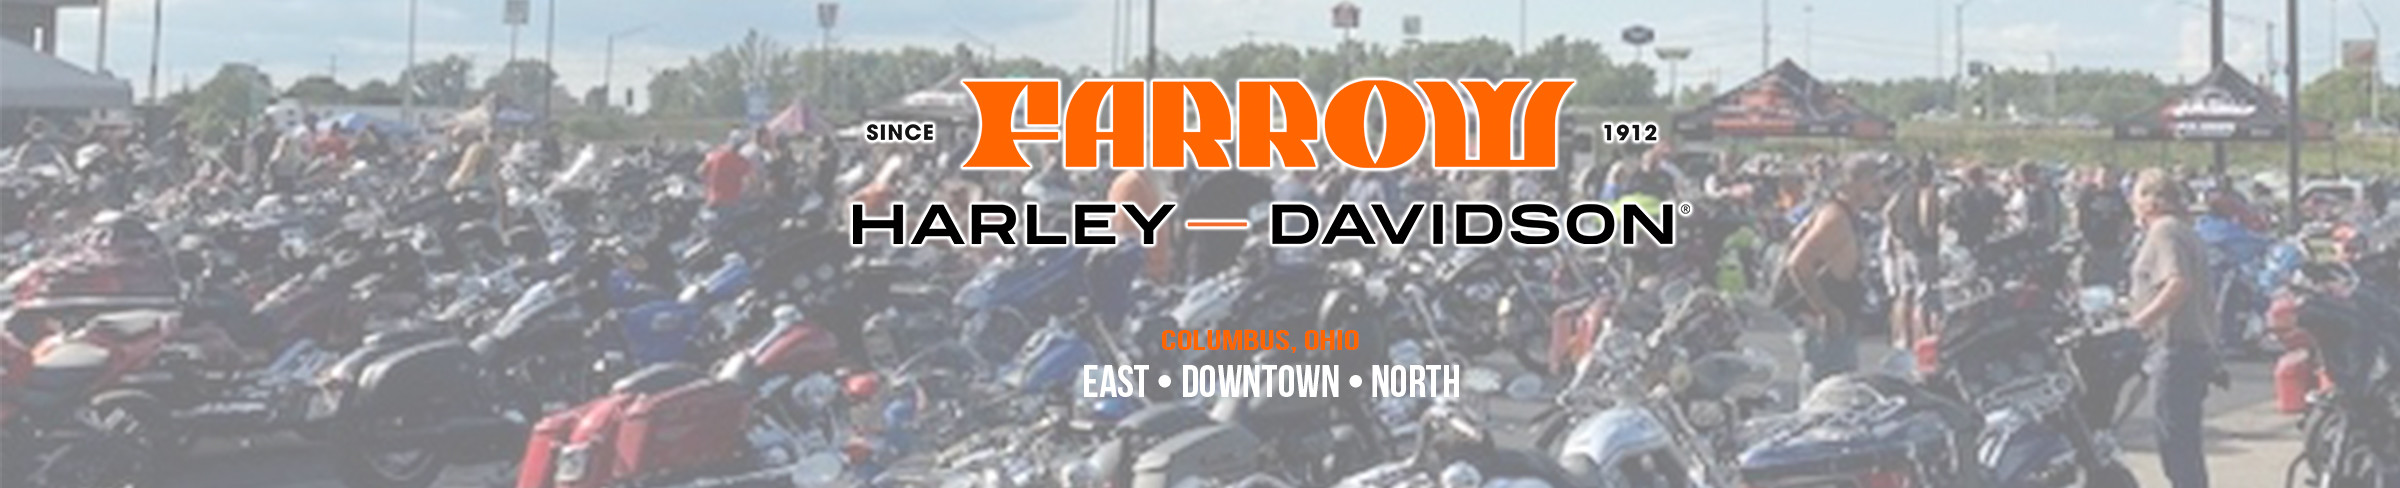 Farrow Harley-Davidson® Events